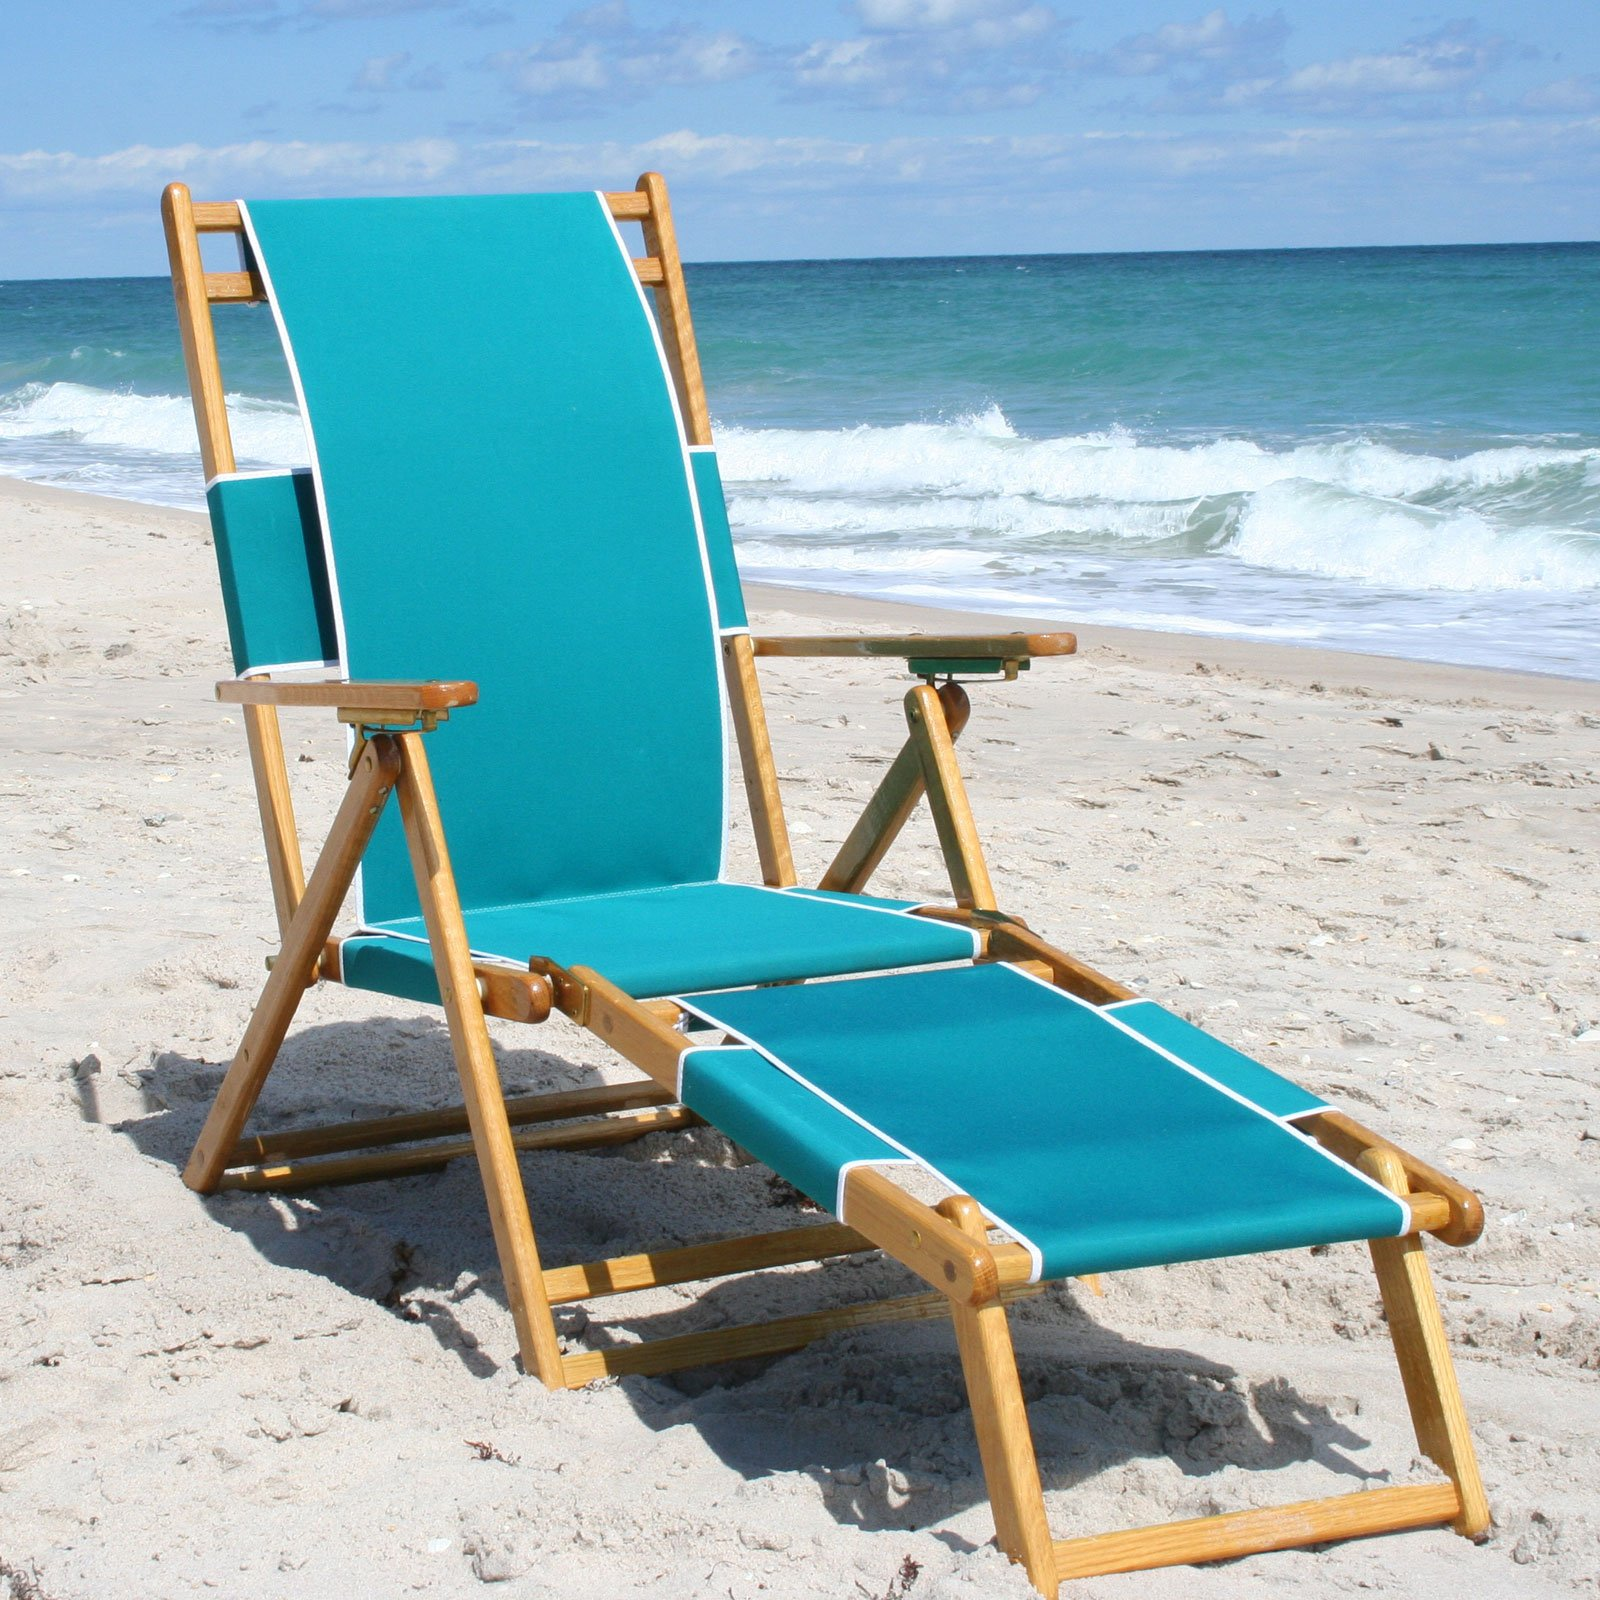 Beach Lounger Chair Hyper Realism Victoria Nigro